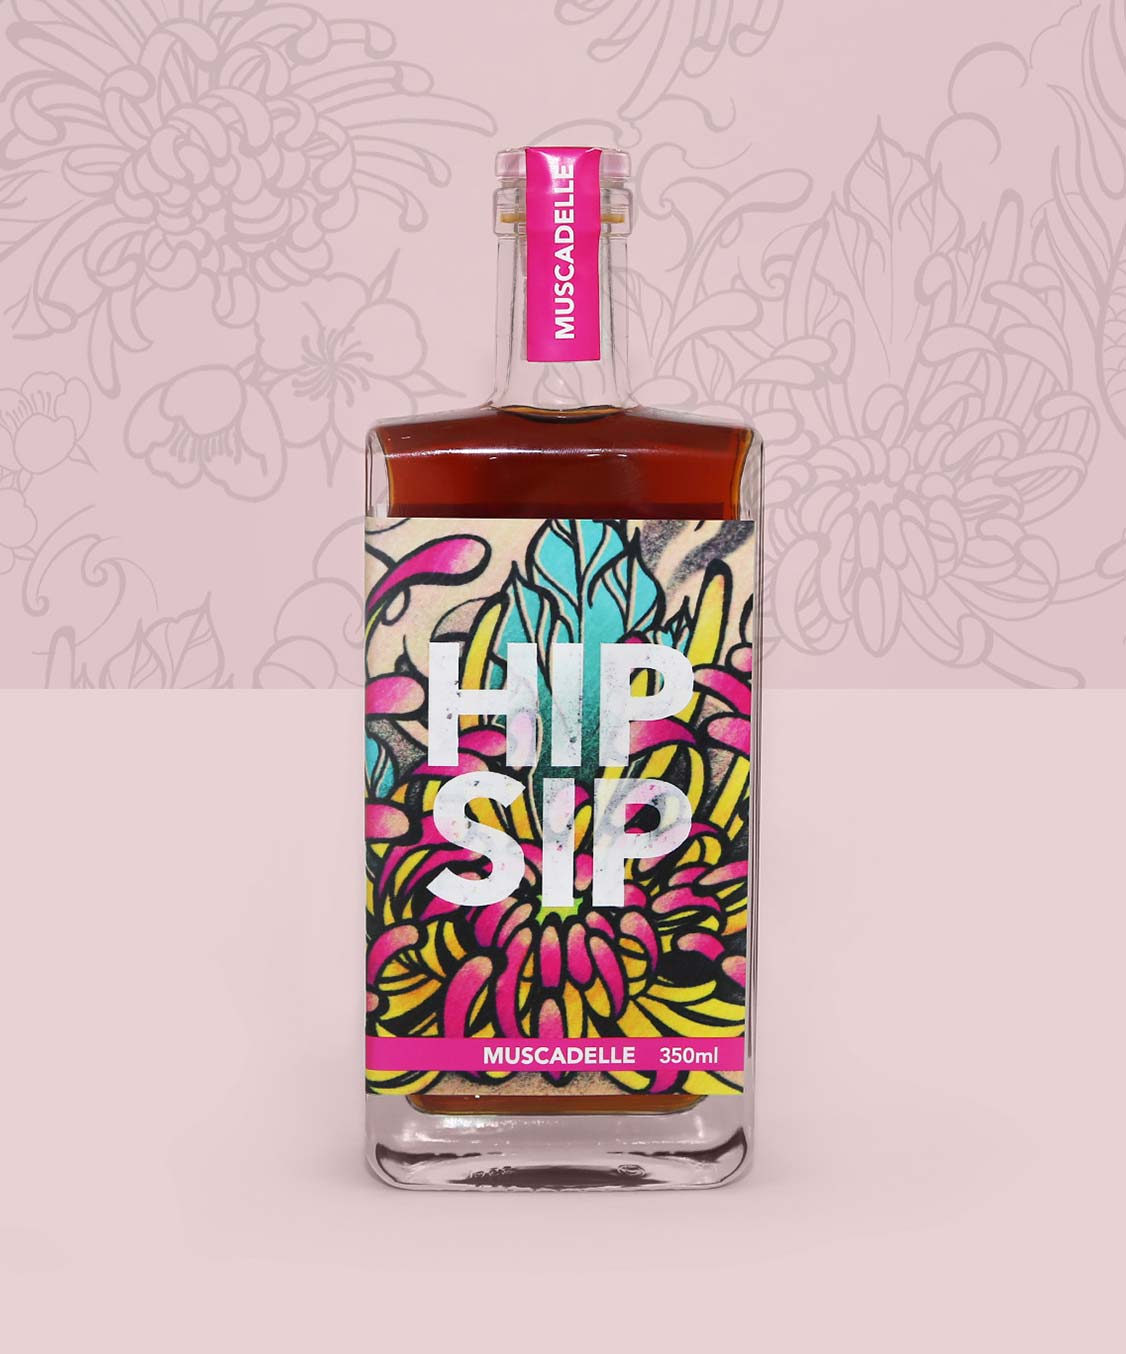 Hip Sip Muscadelle pink bottle with tattoo artwork